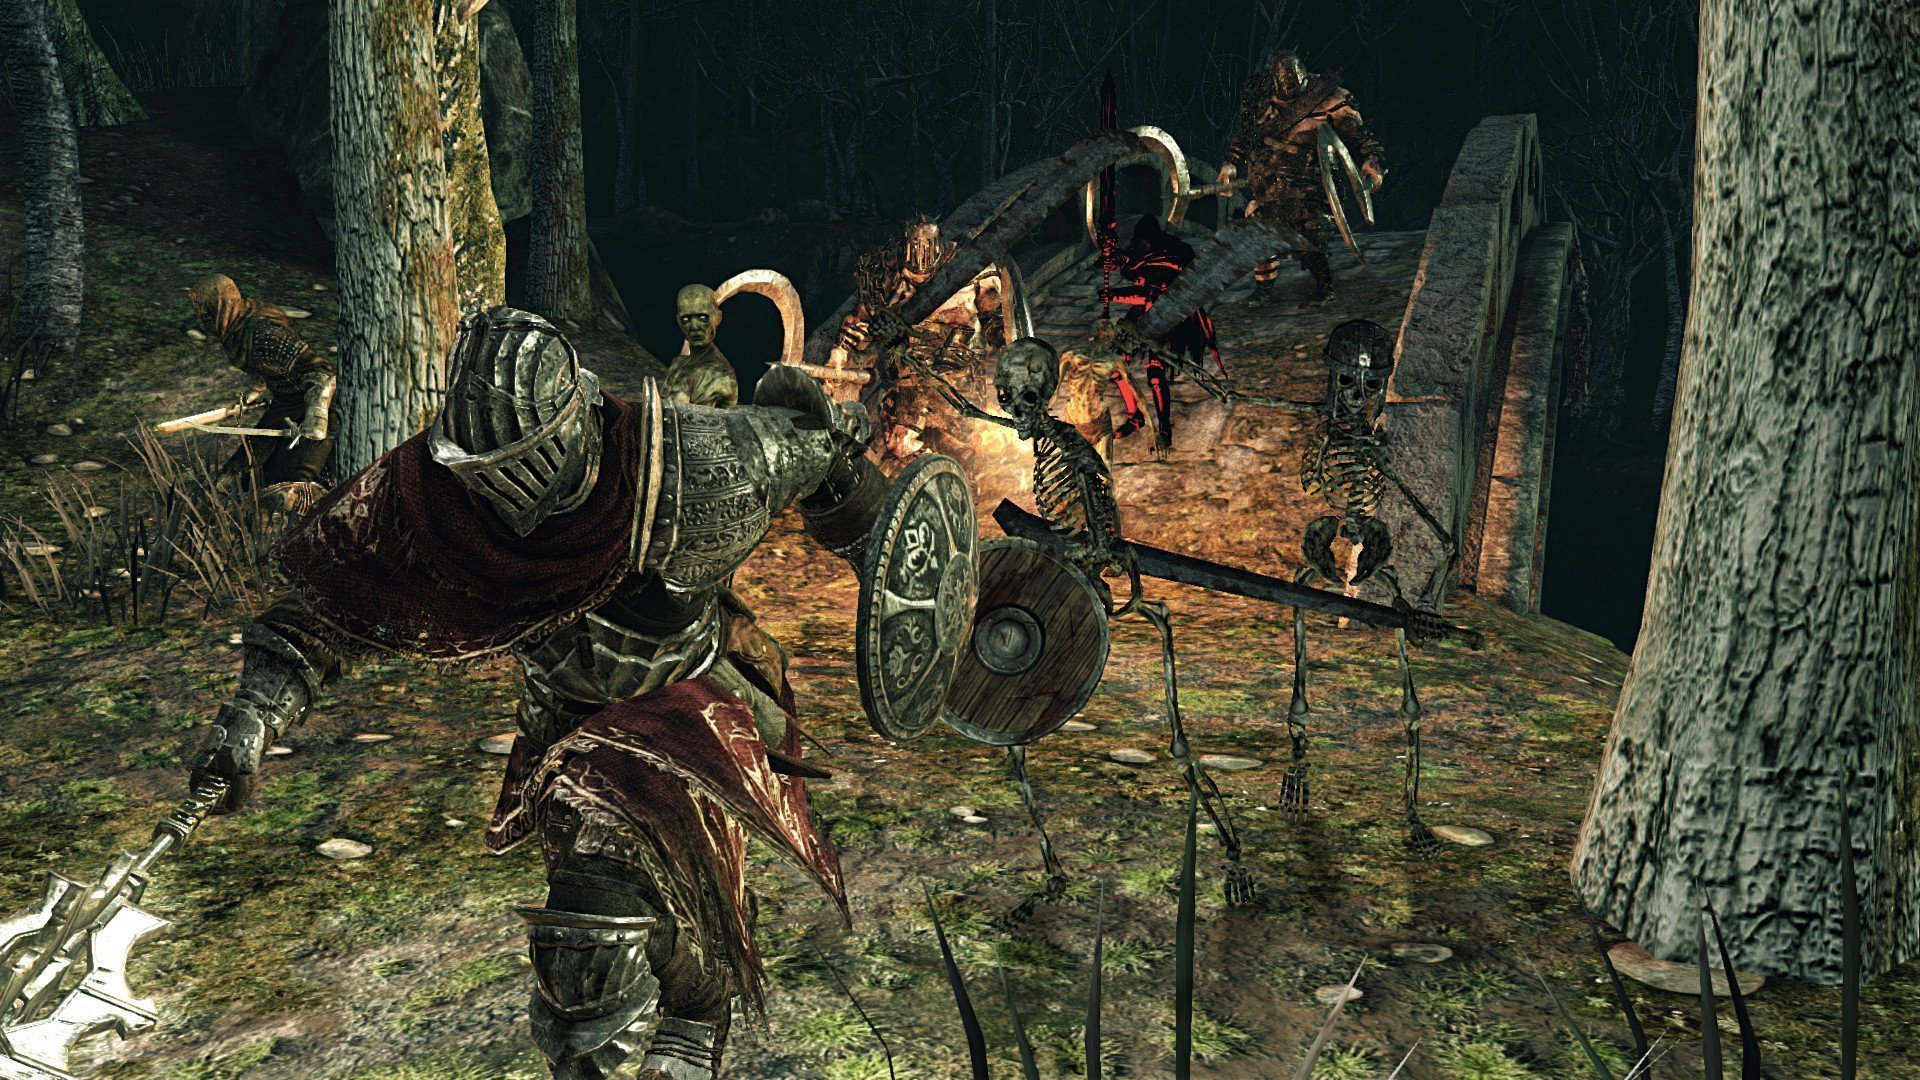 Dark Souls II 2: Scholar of the First Sin Activation key + Crack Latest Version PC Game For Free Download